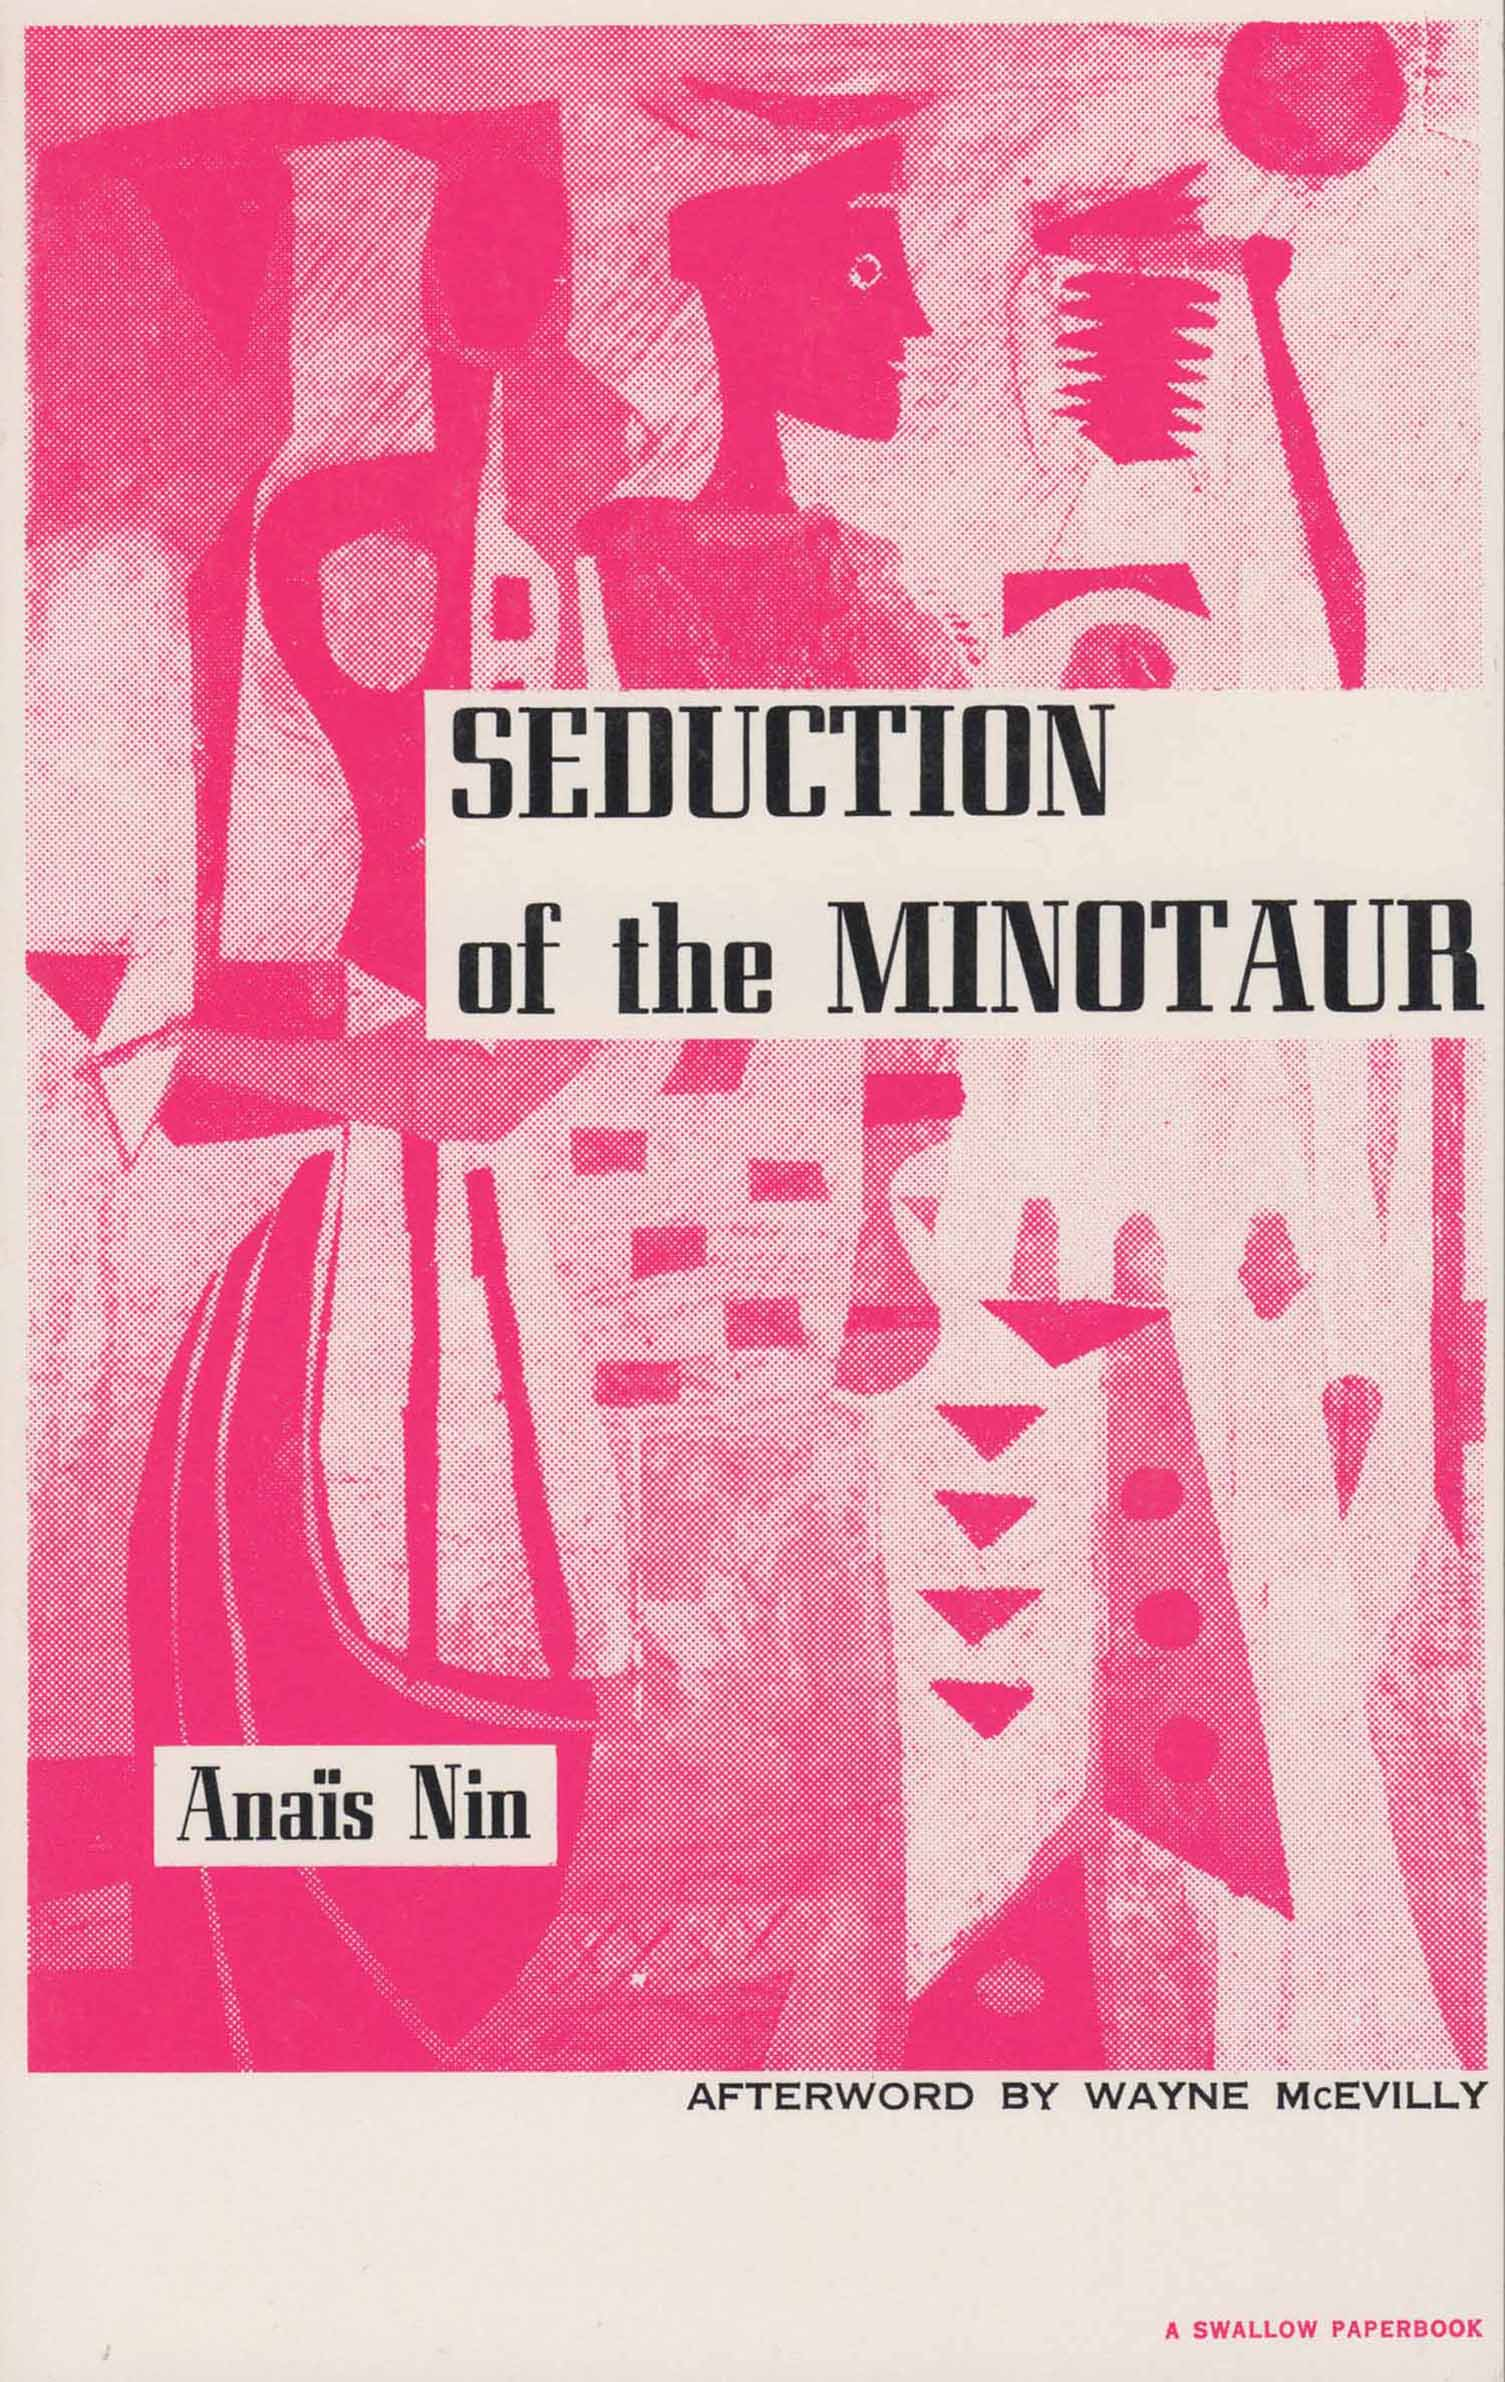 Seduction of the Minotaur